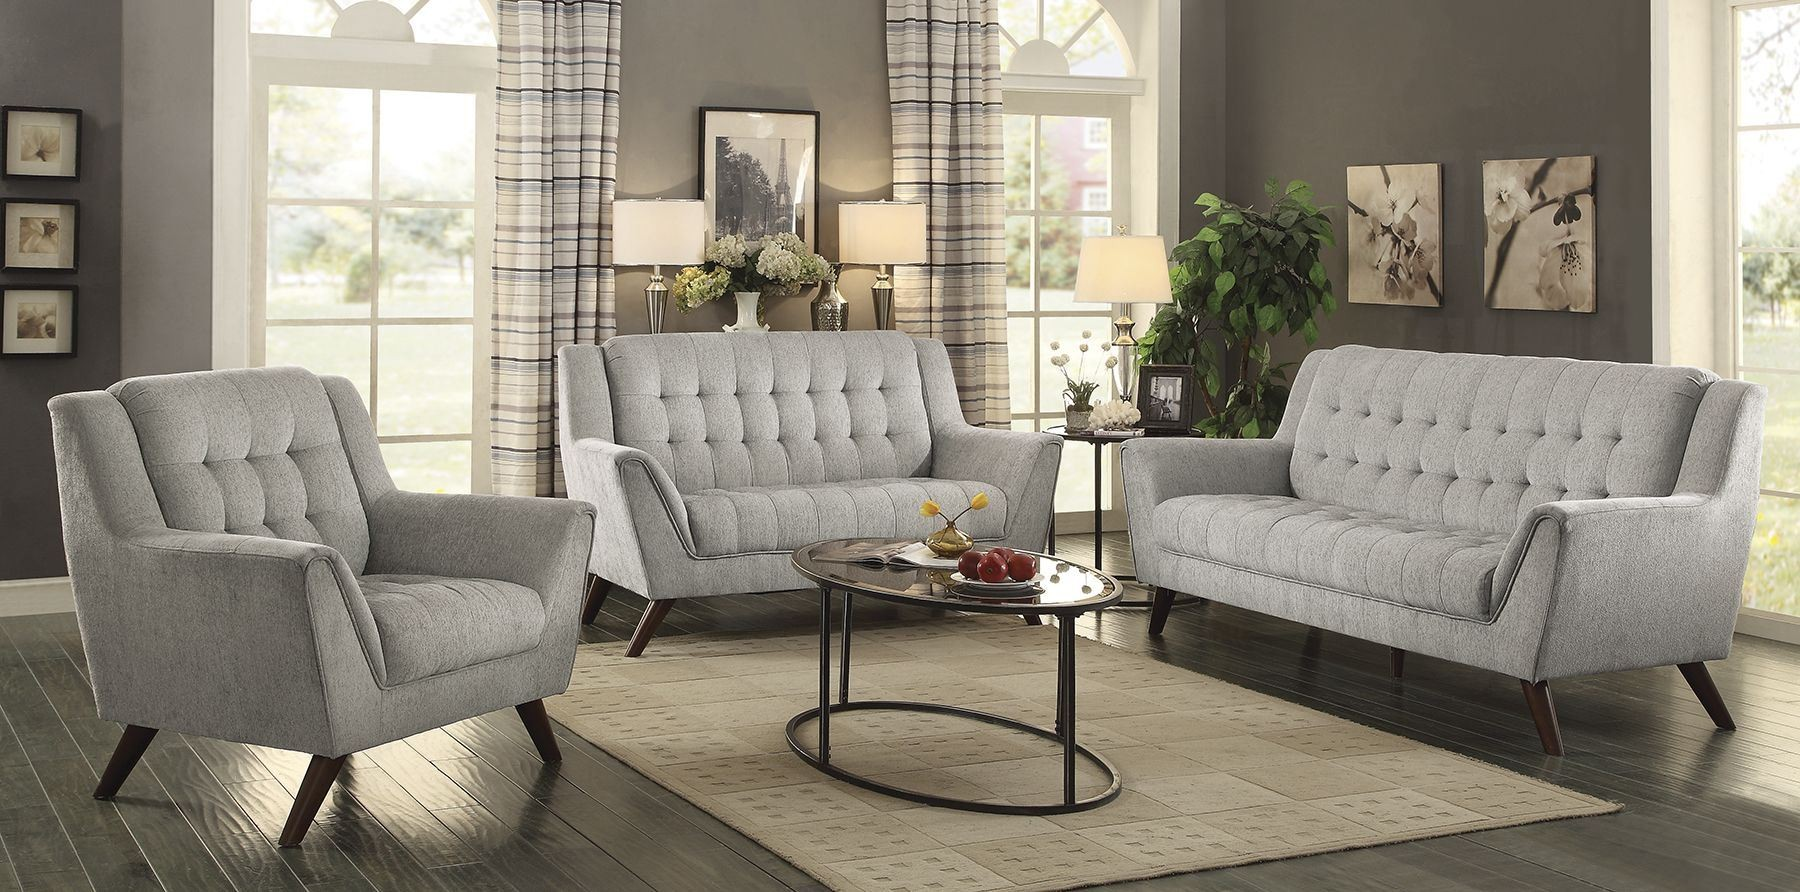 Baby natalia dove gray living room set from coaster - Gray modern living room furniture ...